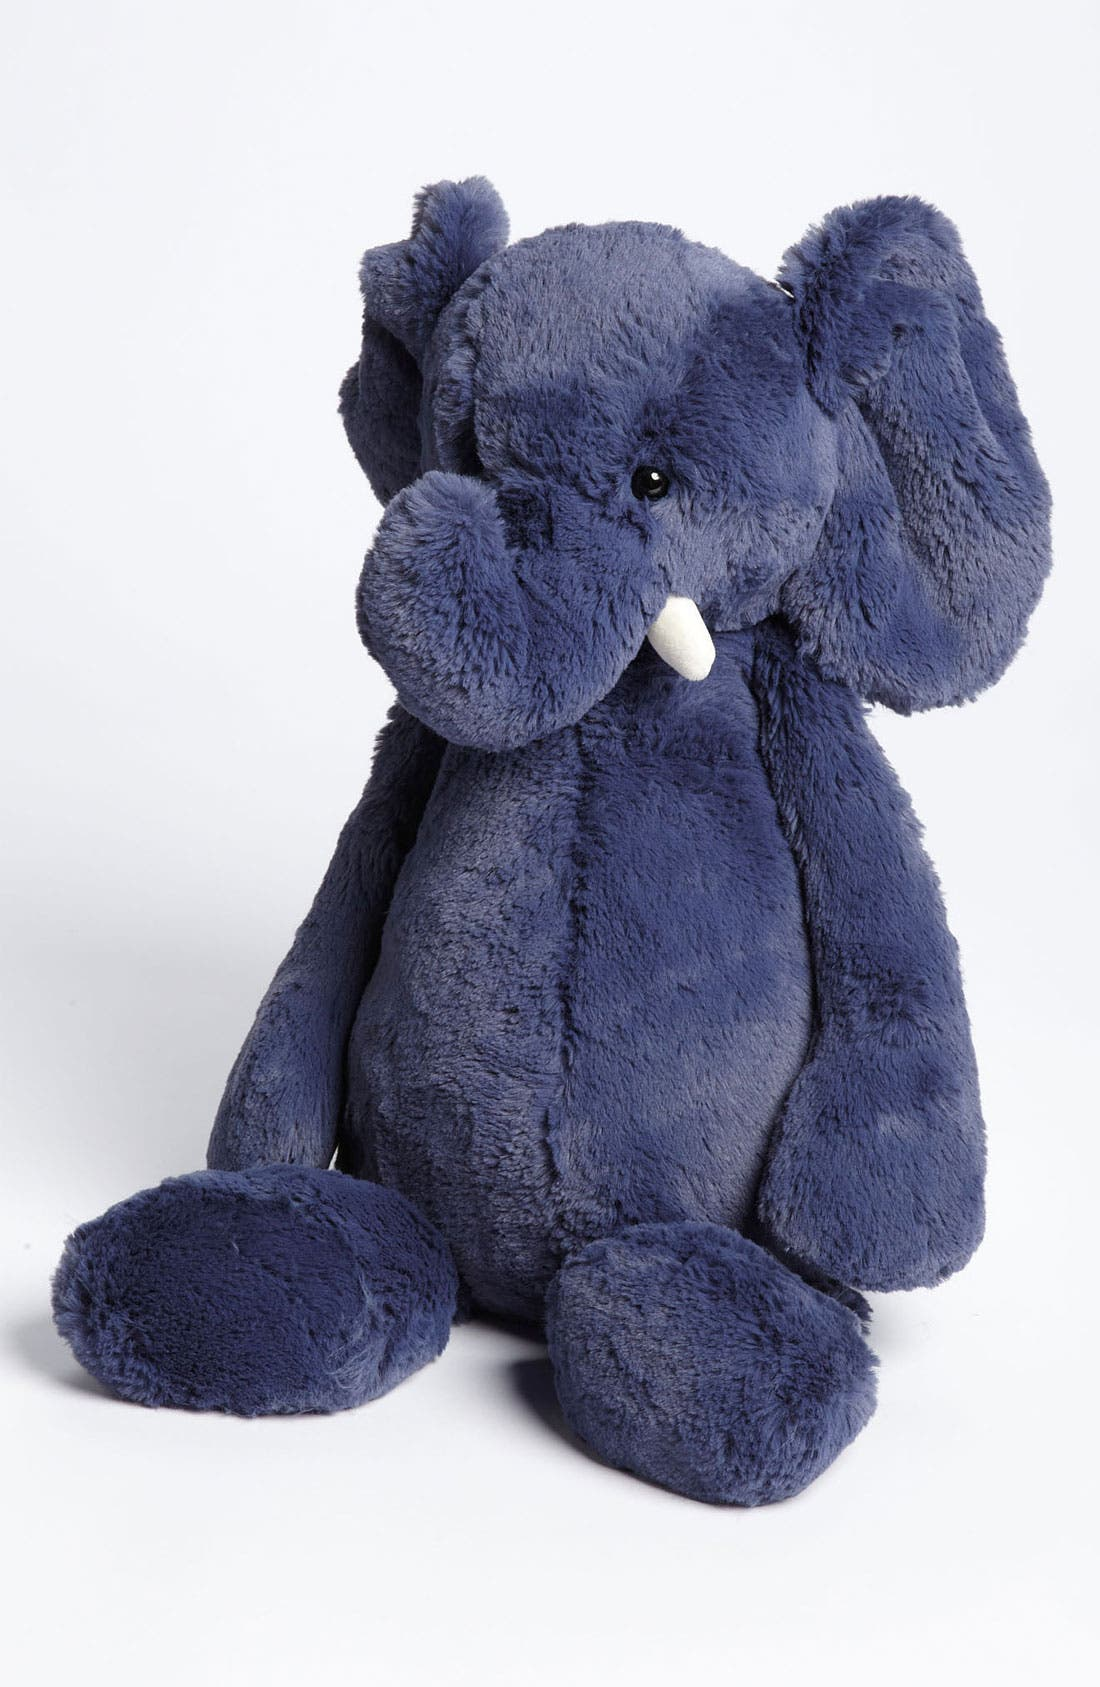 Main Image - Jellycat 'Large Bashful Elephant' Stuffed Animal